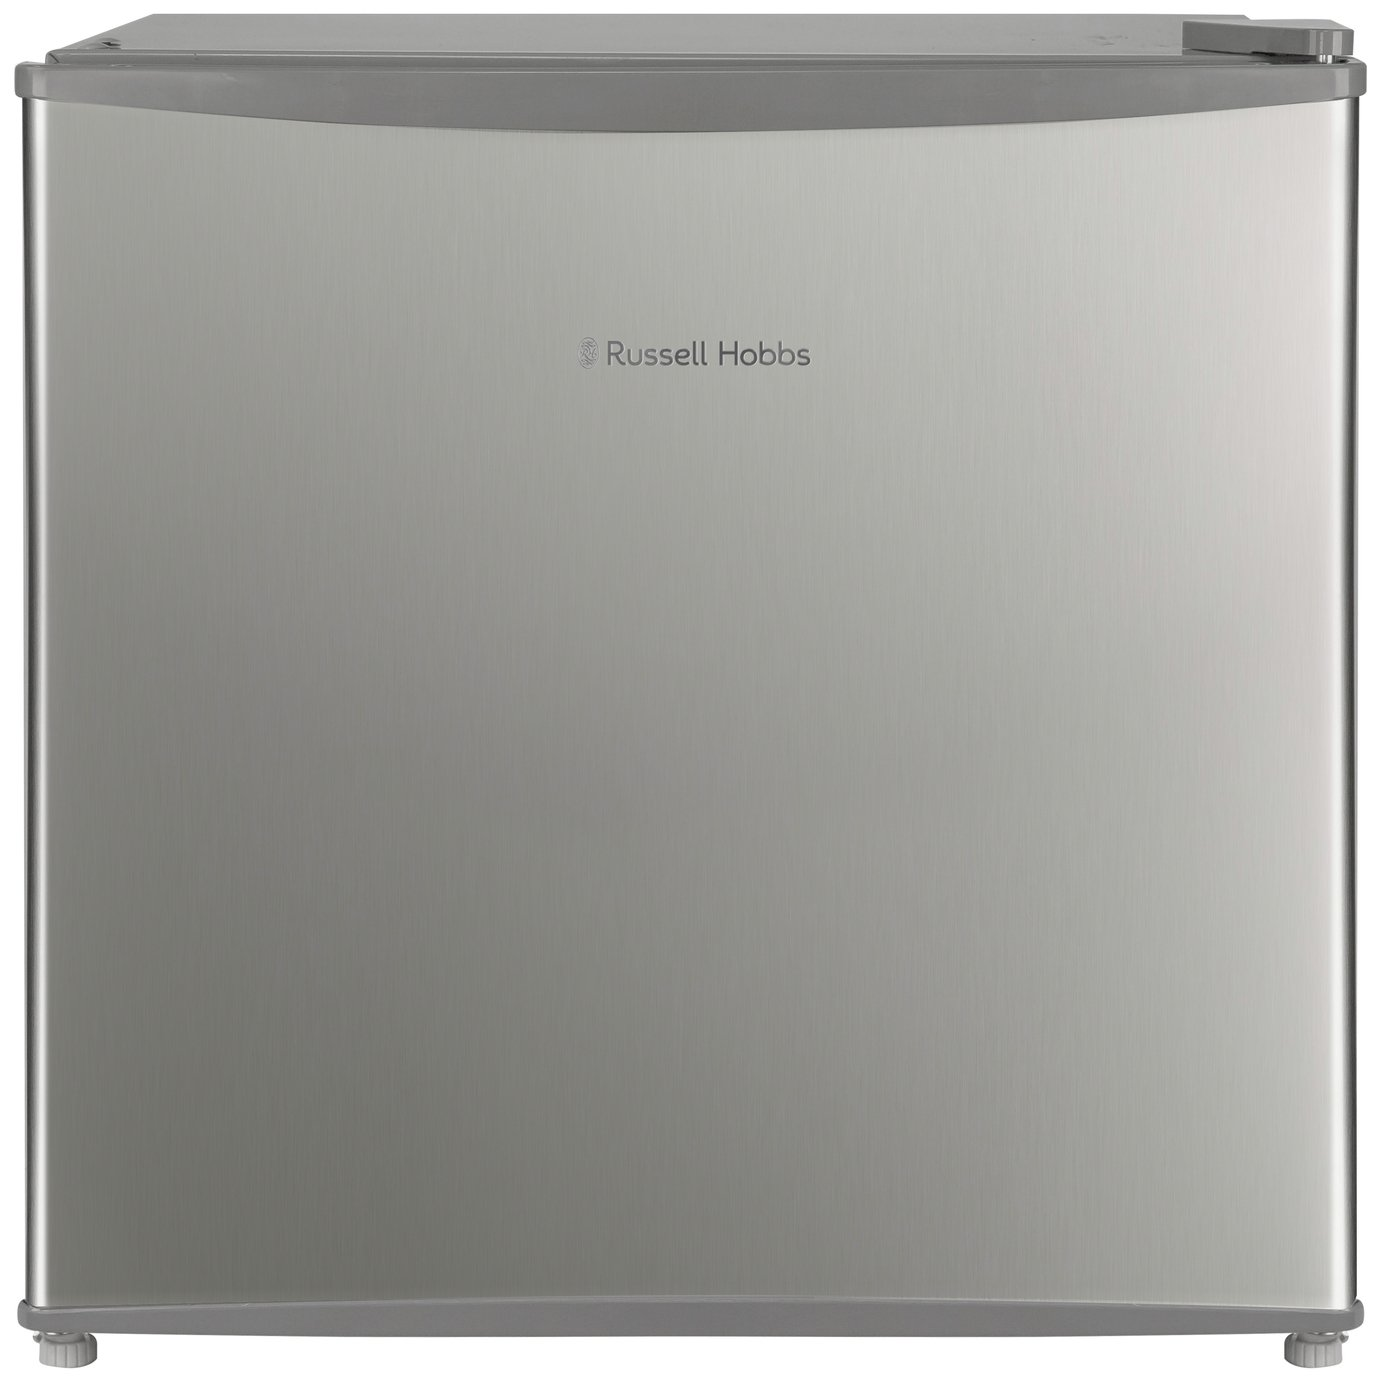 Russell Hobbs RHTTLF1SS Table Top Fridge - Stainless Steel